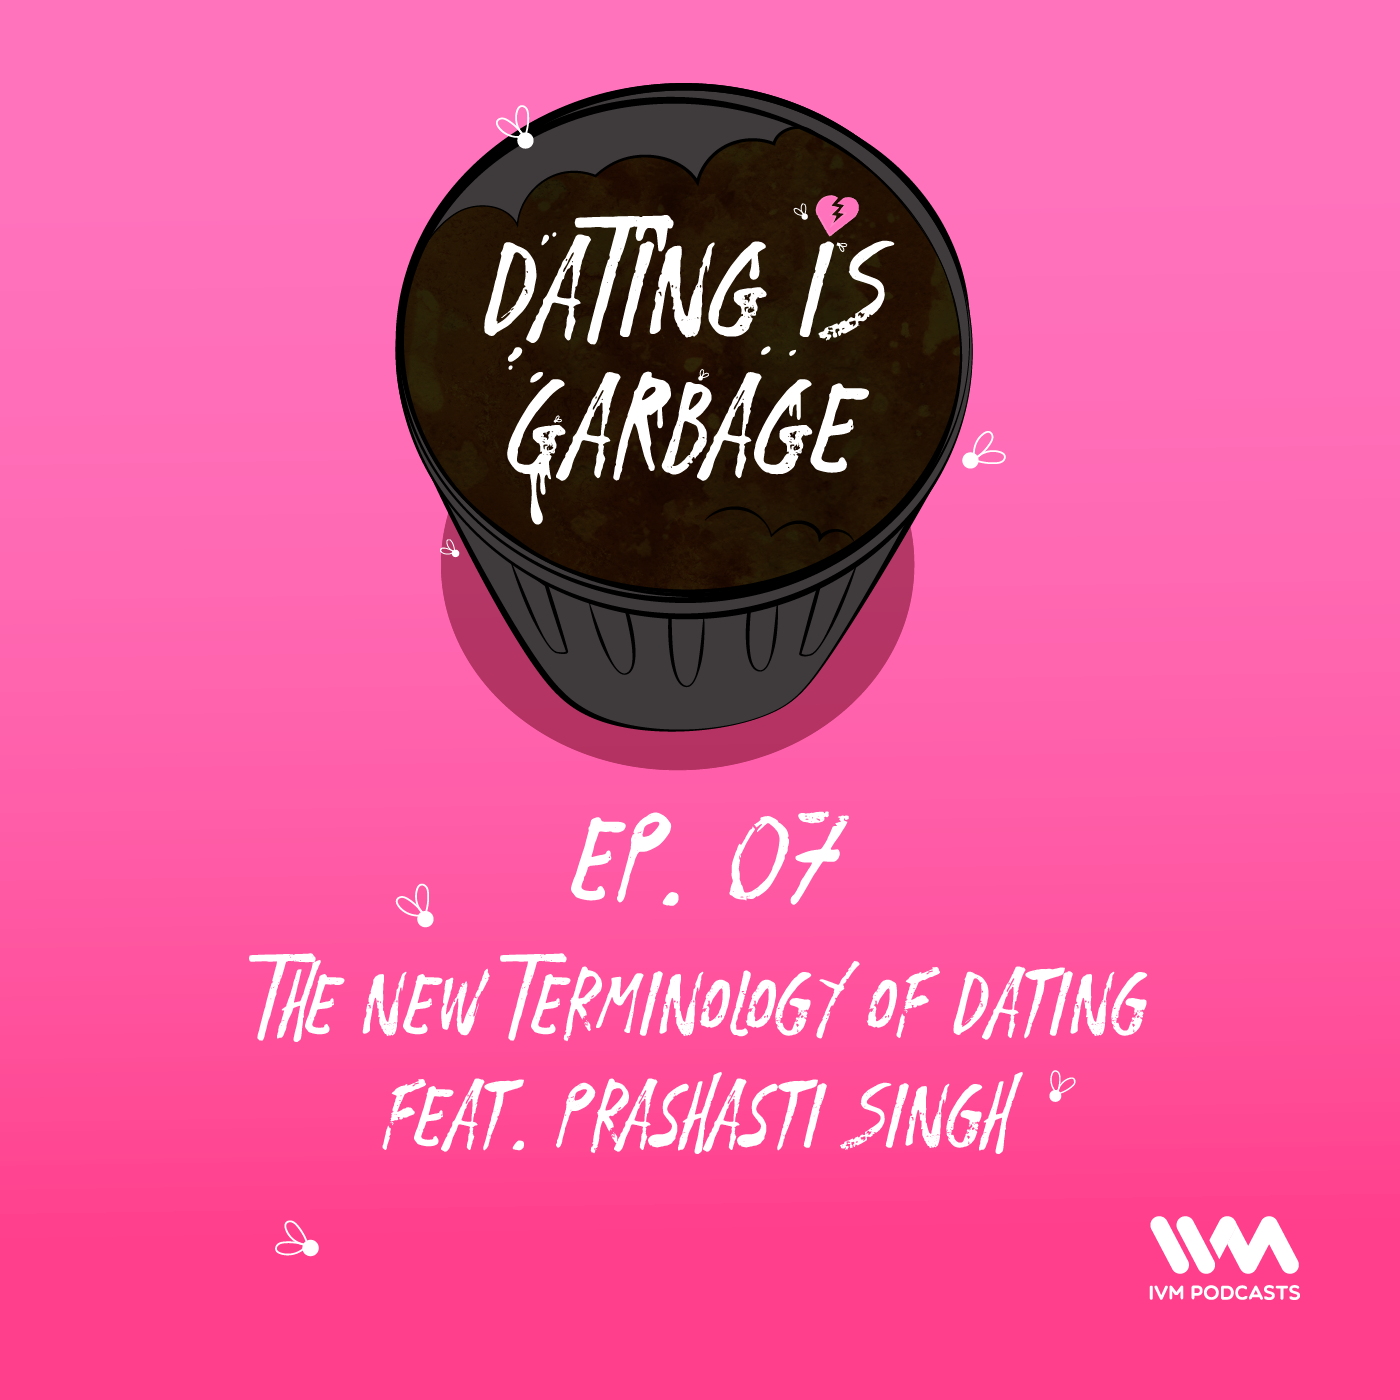 Ep. 07: The New Terminology of Dating